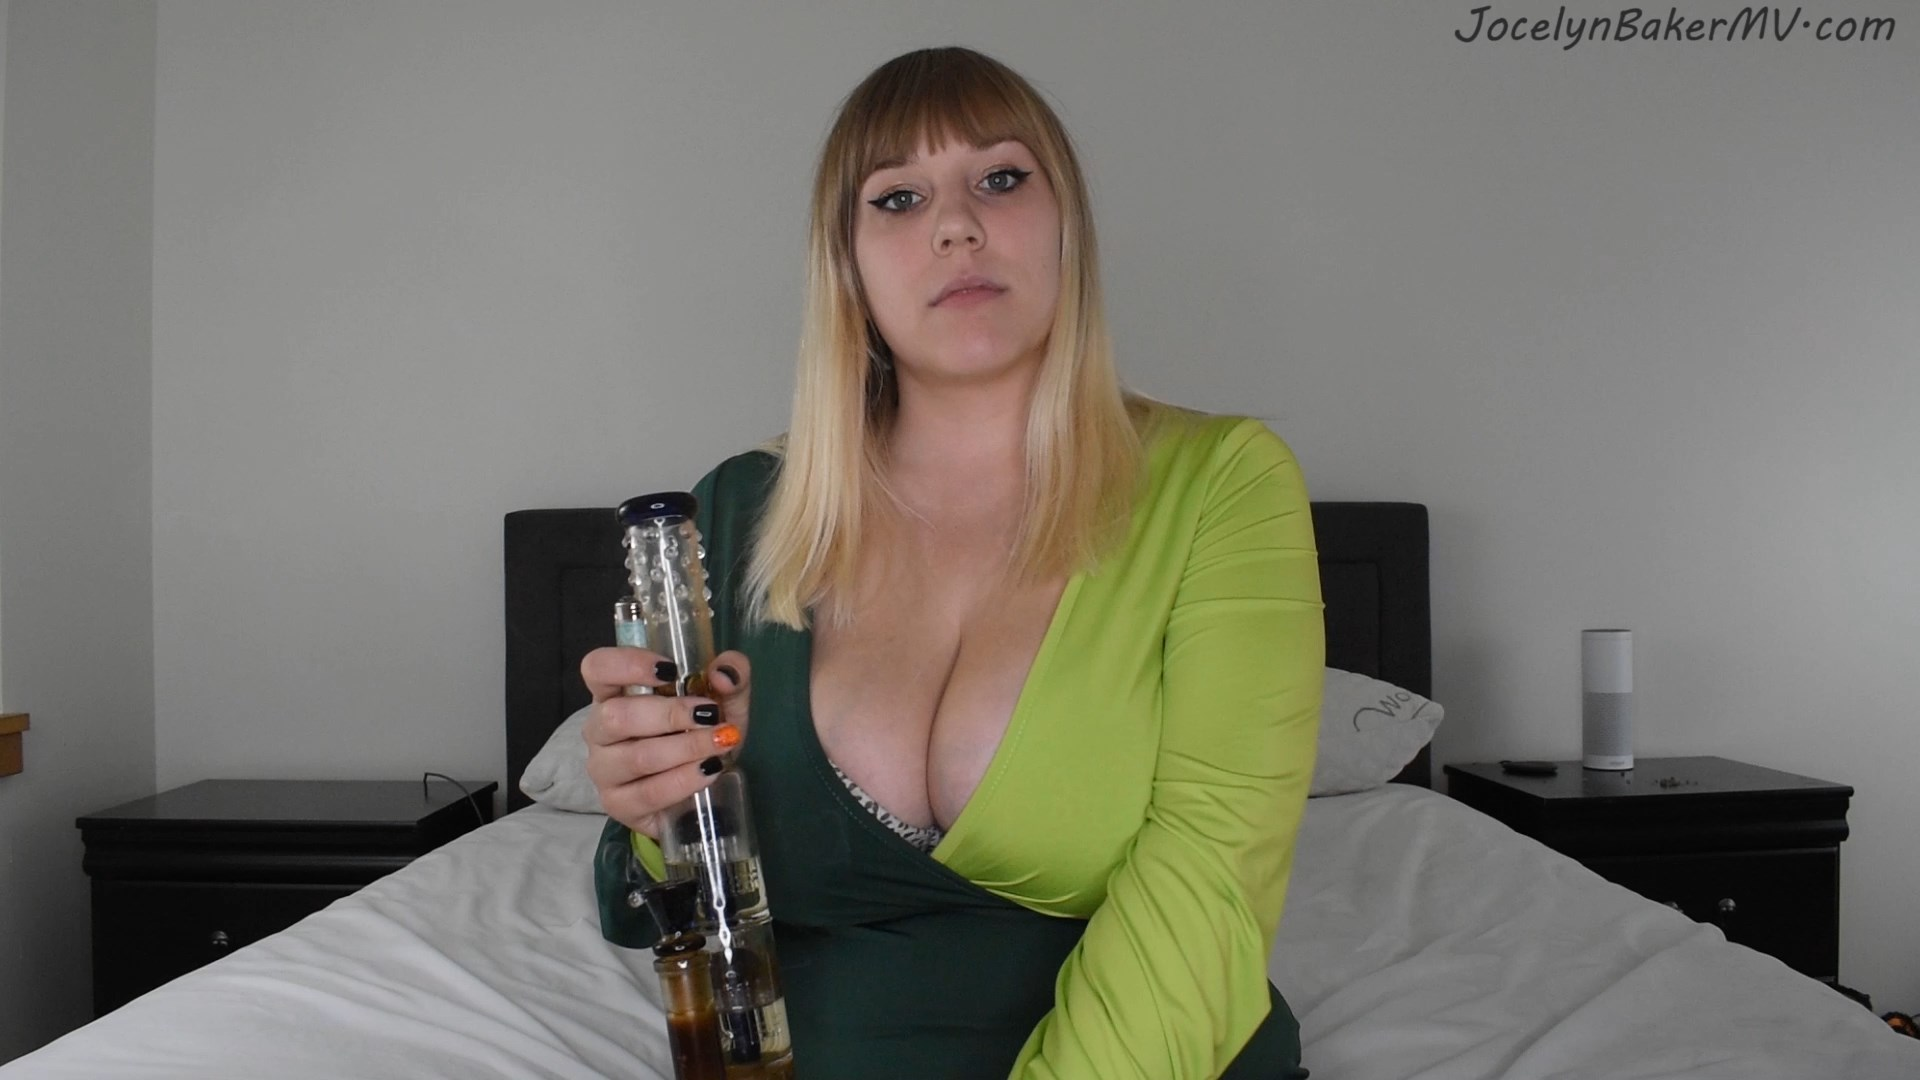 Jocelyn Baker - MOMMY SMOKES YOUR STASH